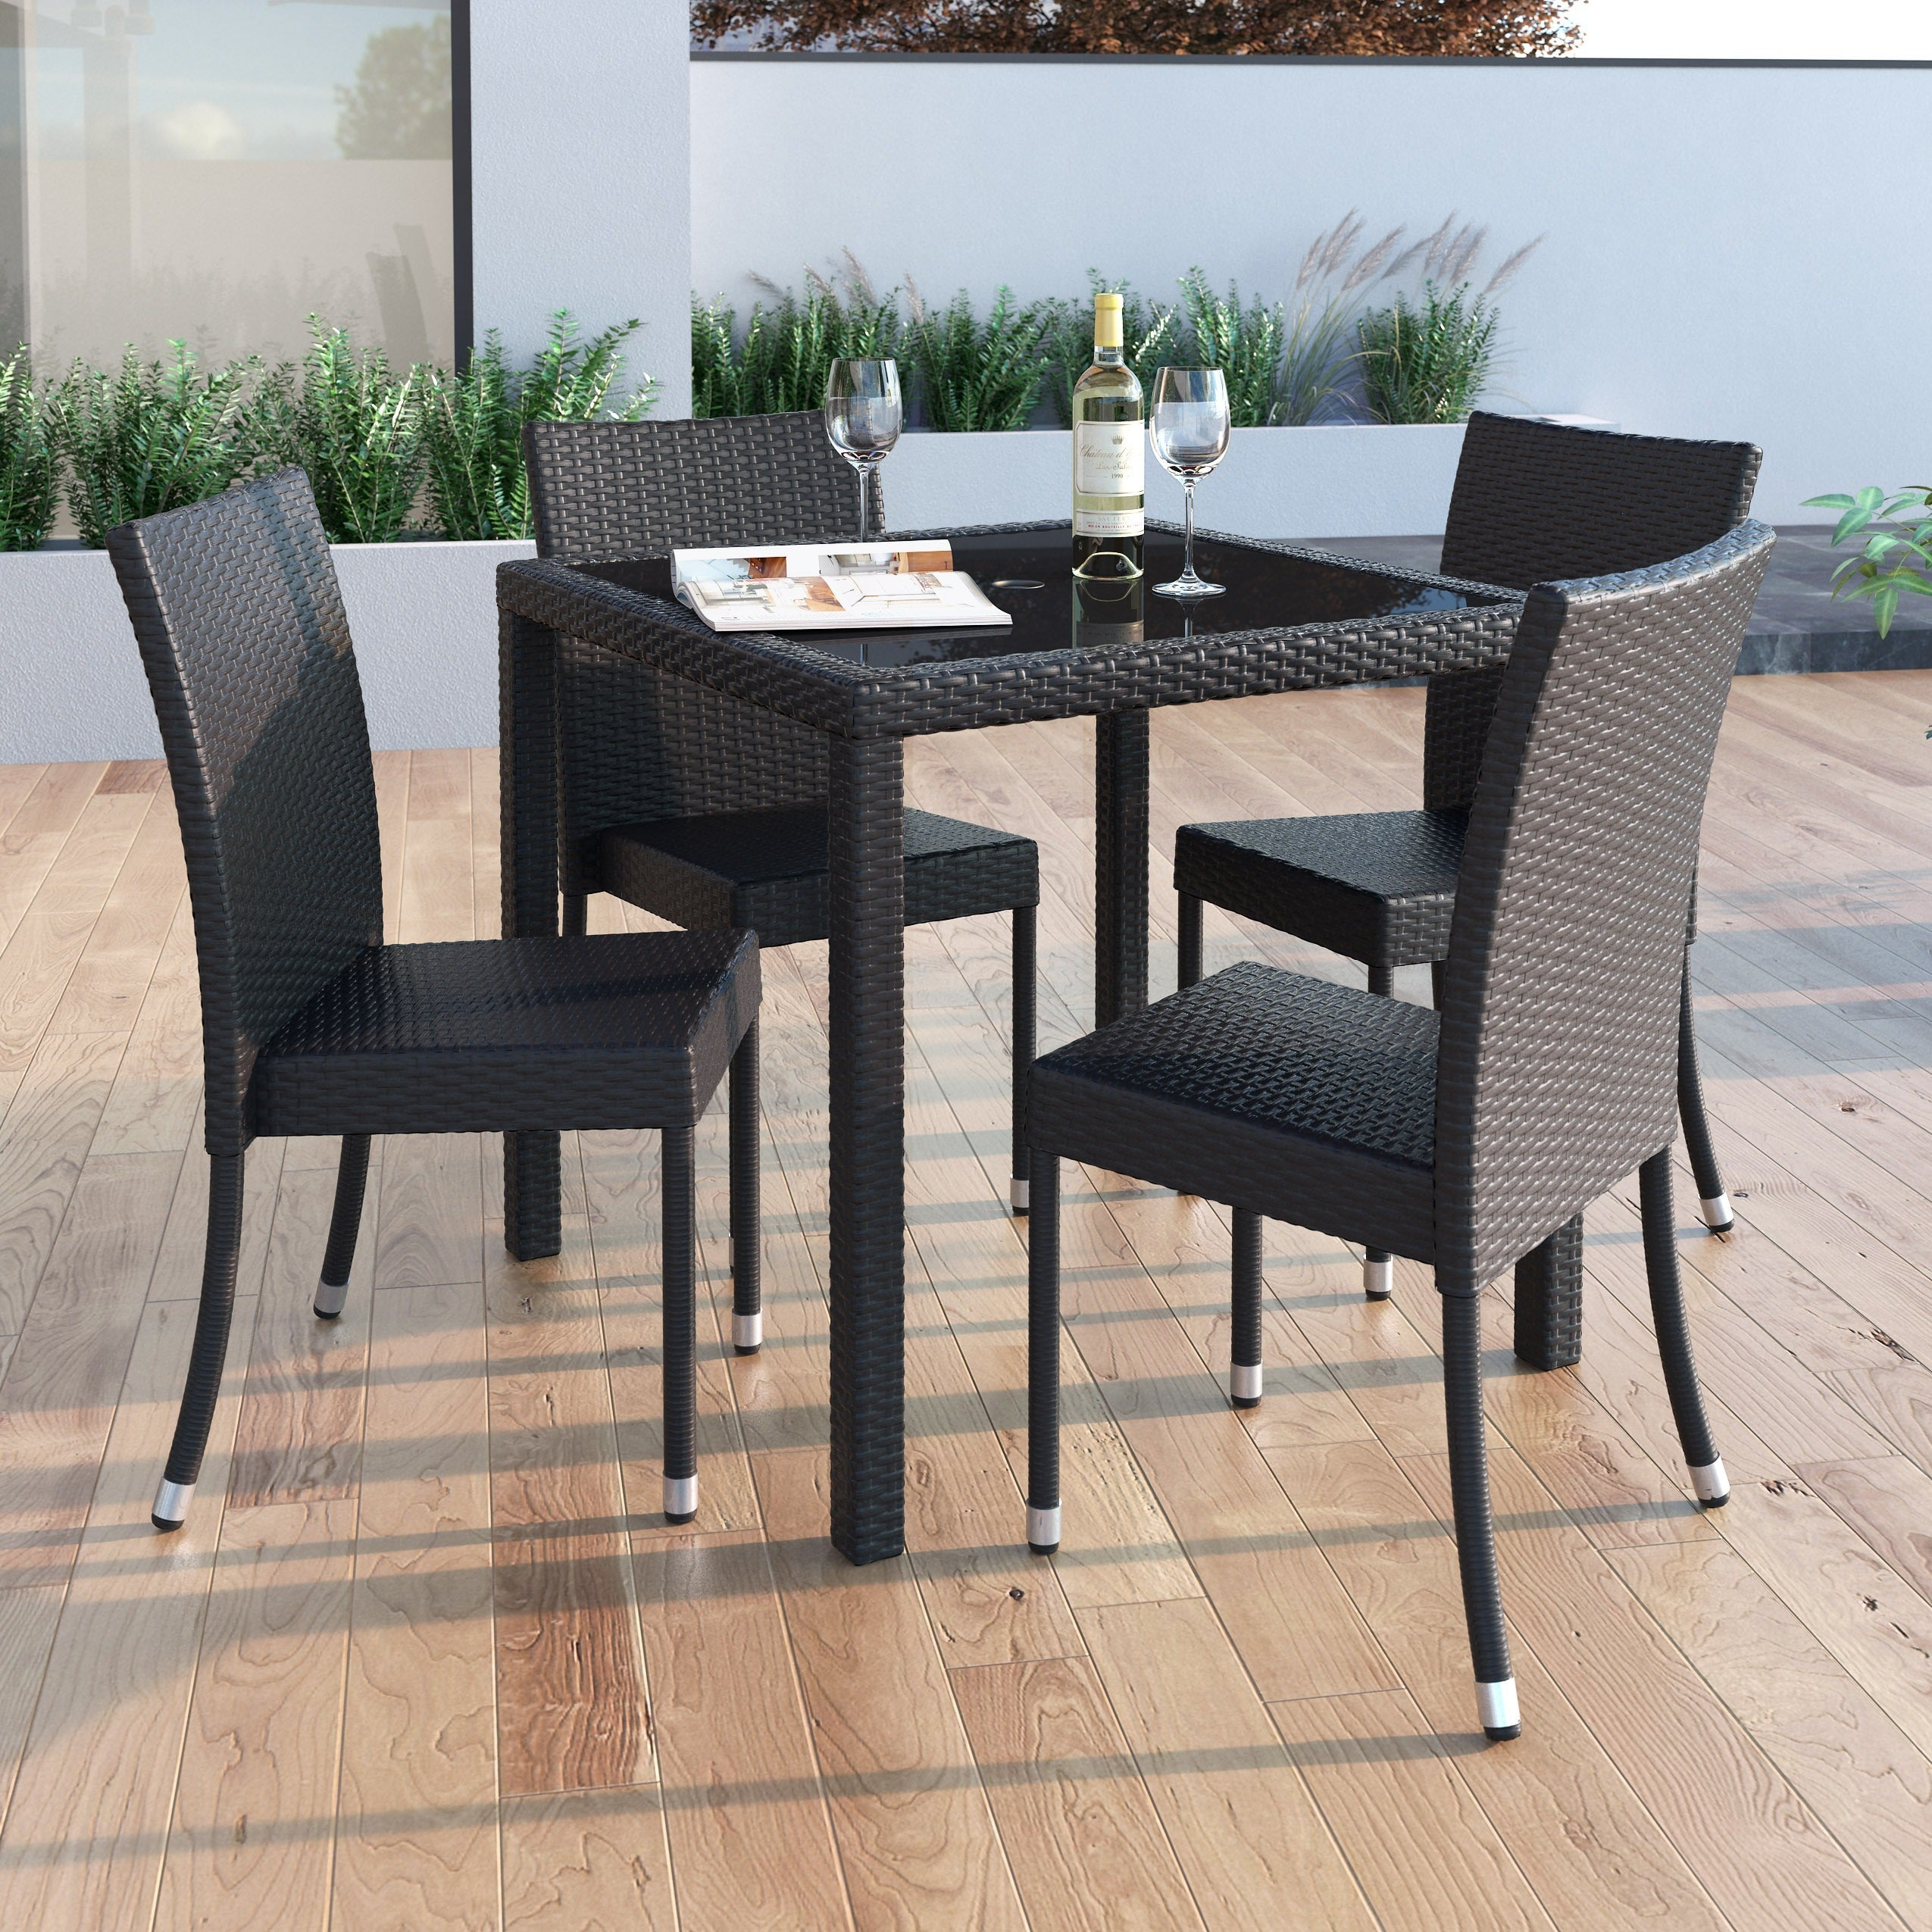 Corliving Park Terrace Square Patio Dining Table